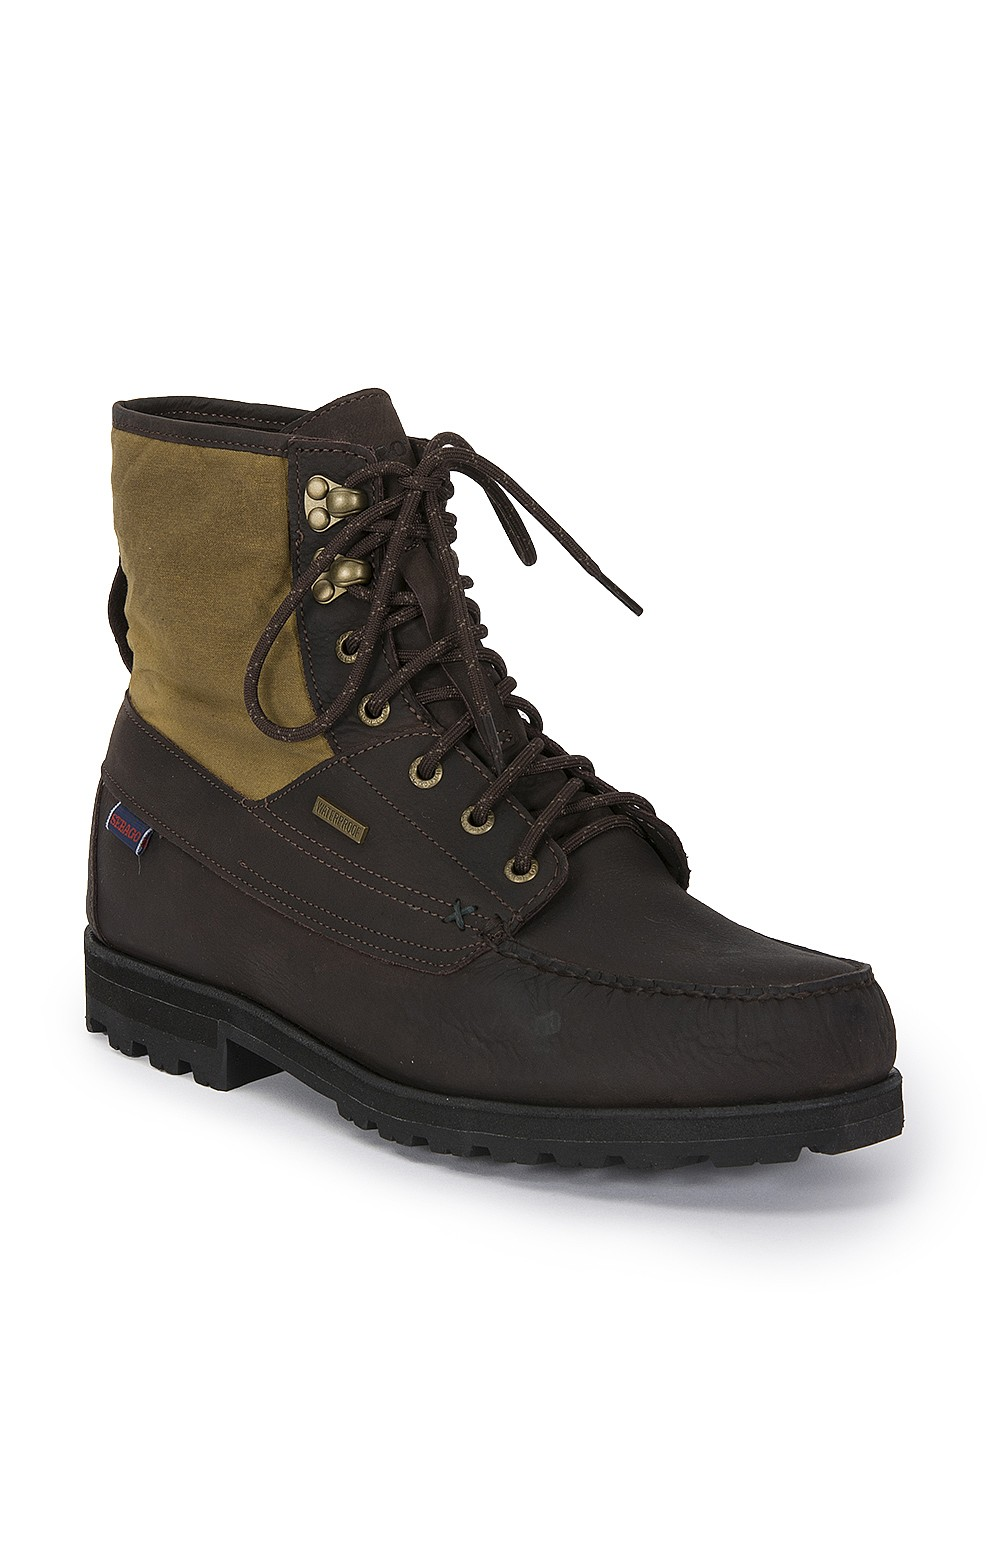 f4037a61a20 Mens Sebago Waterproof Vershire Boot - House of Bruar